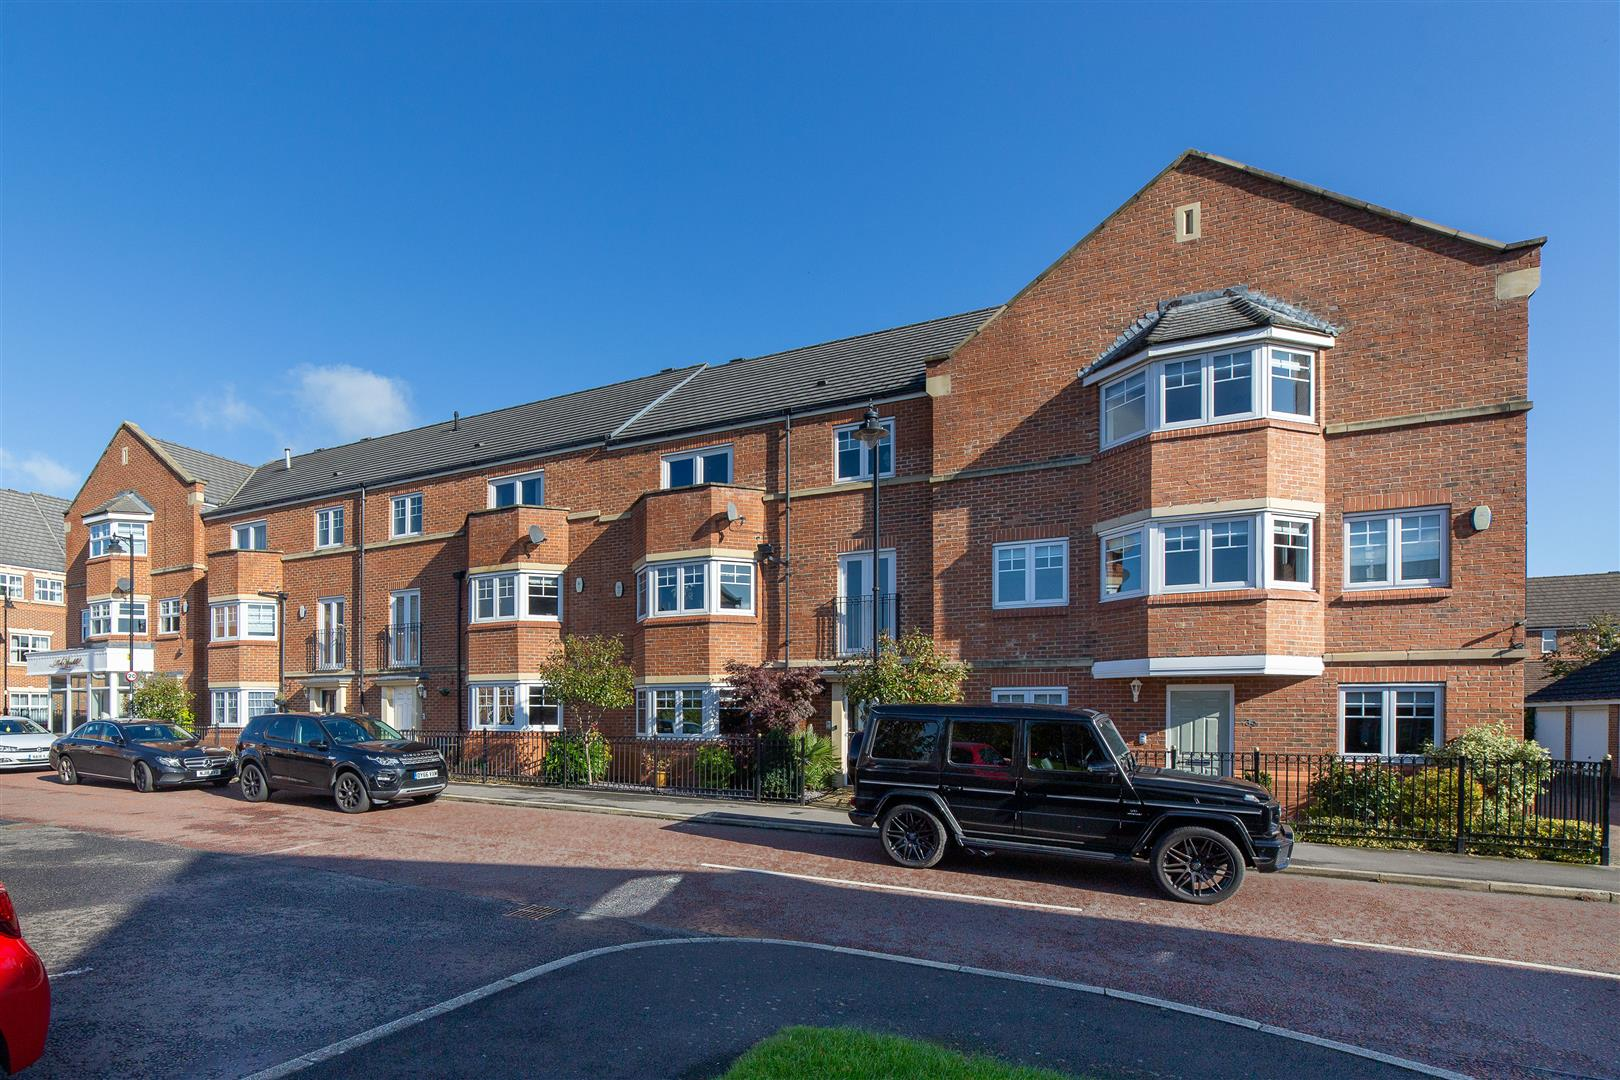 5 bed town house for sale in Newcastle Upon Tyne, NE3 5RF  - Property Image 1